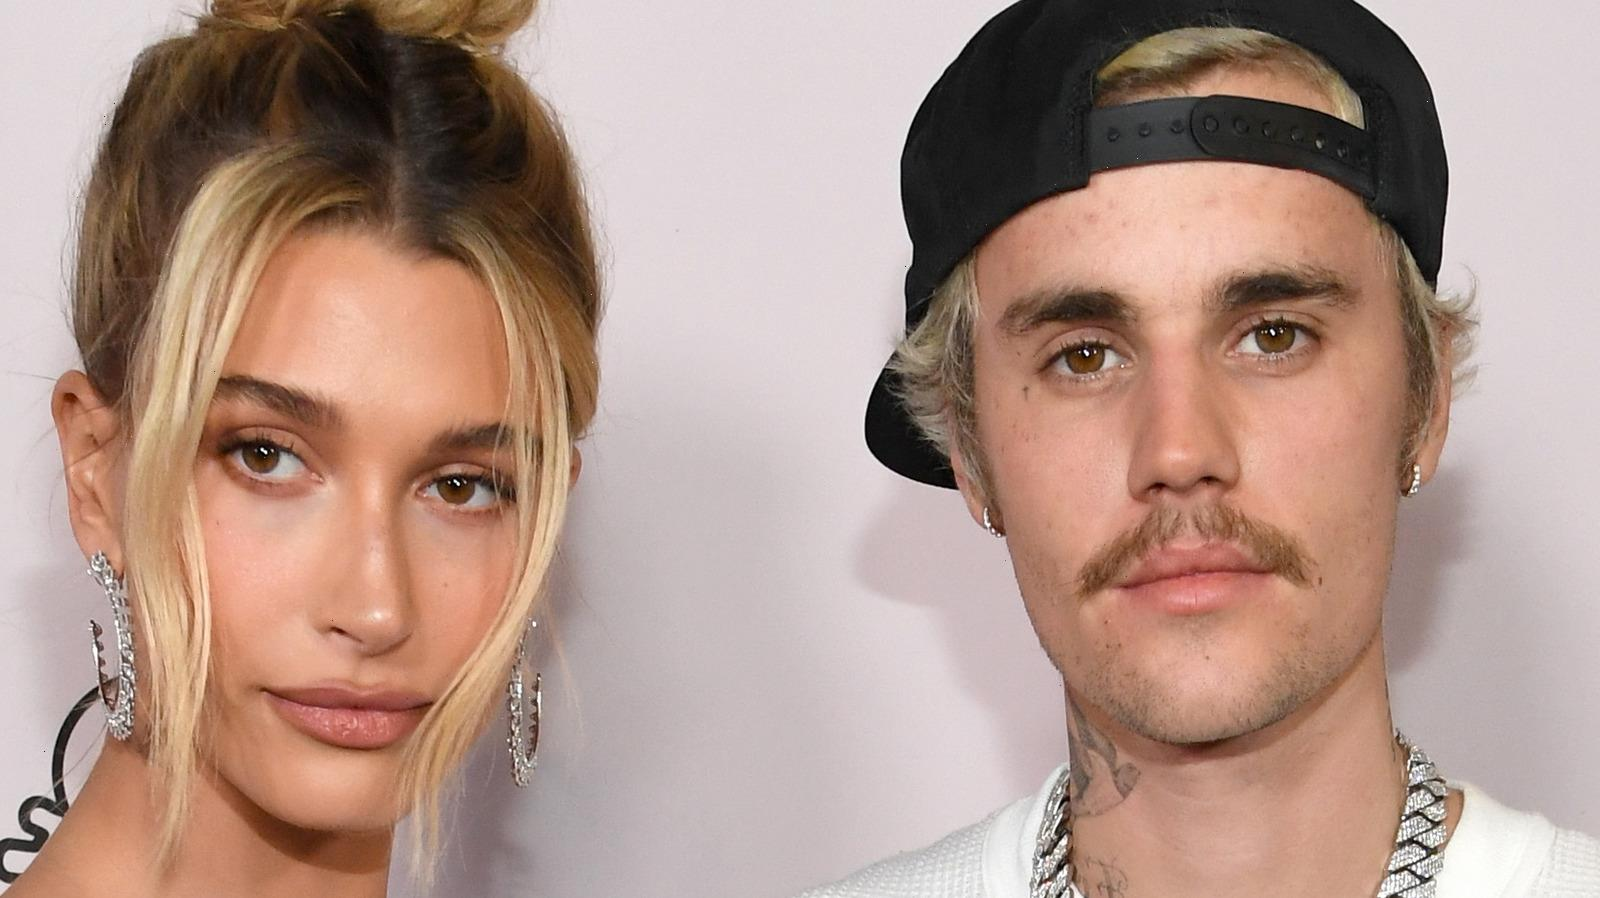 Hailey Bieber Reveals The One Thing That Makes Her Marriage With Justin Bieber So Successful